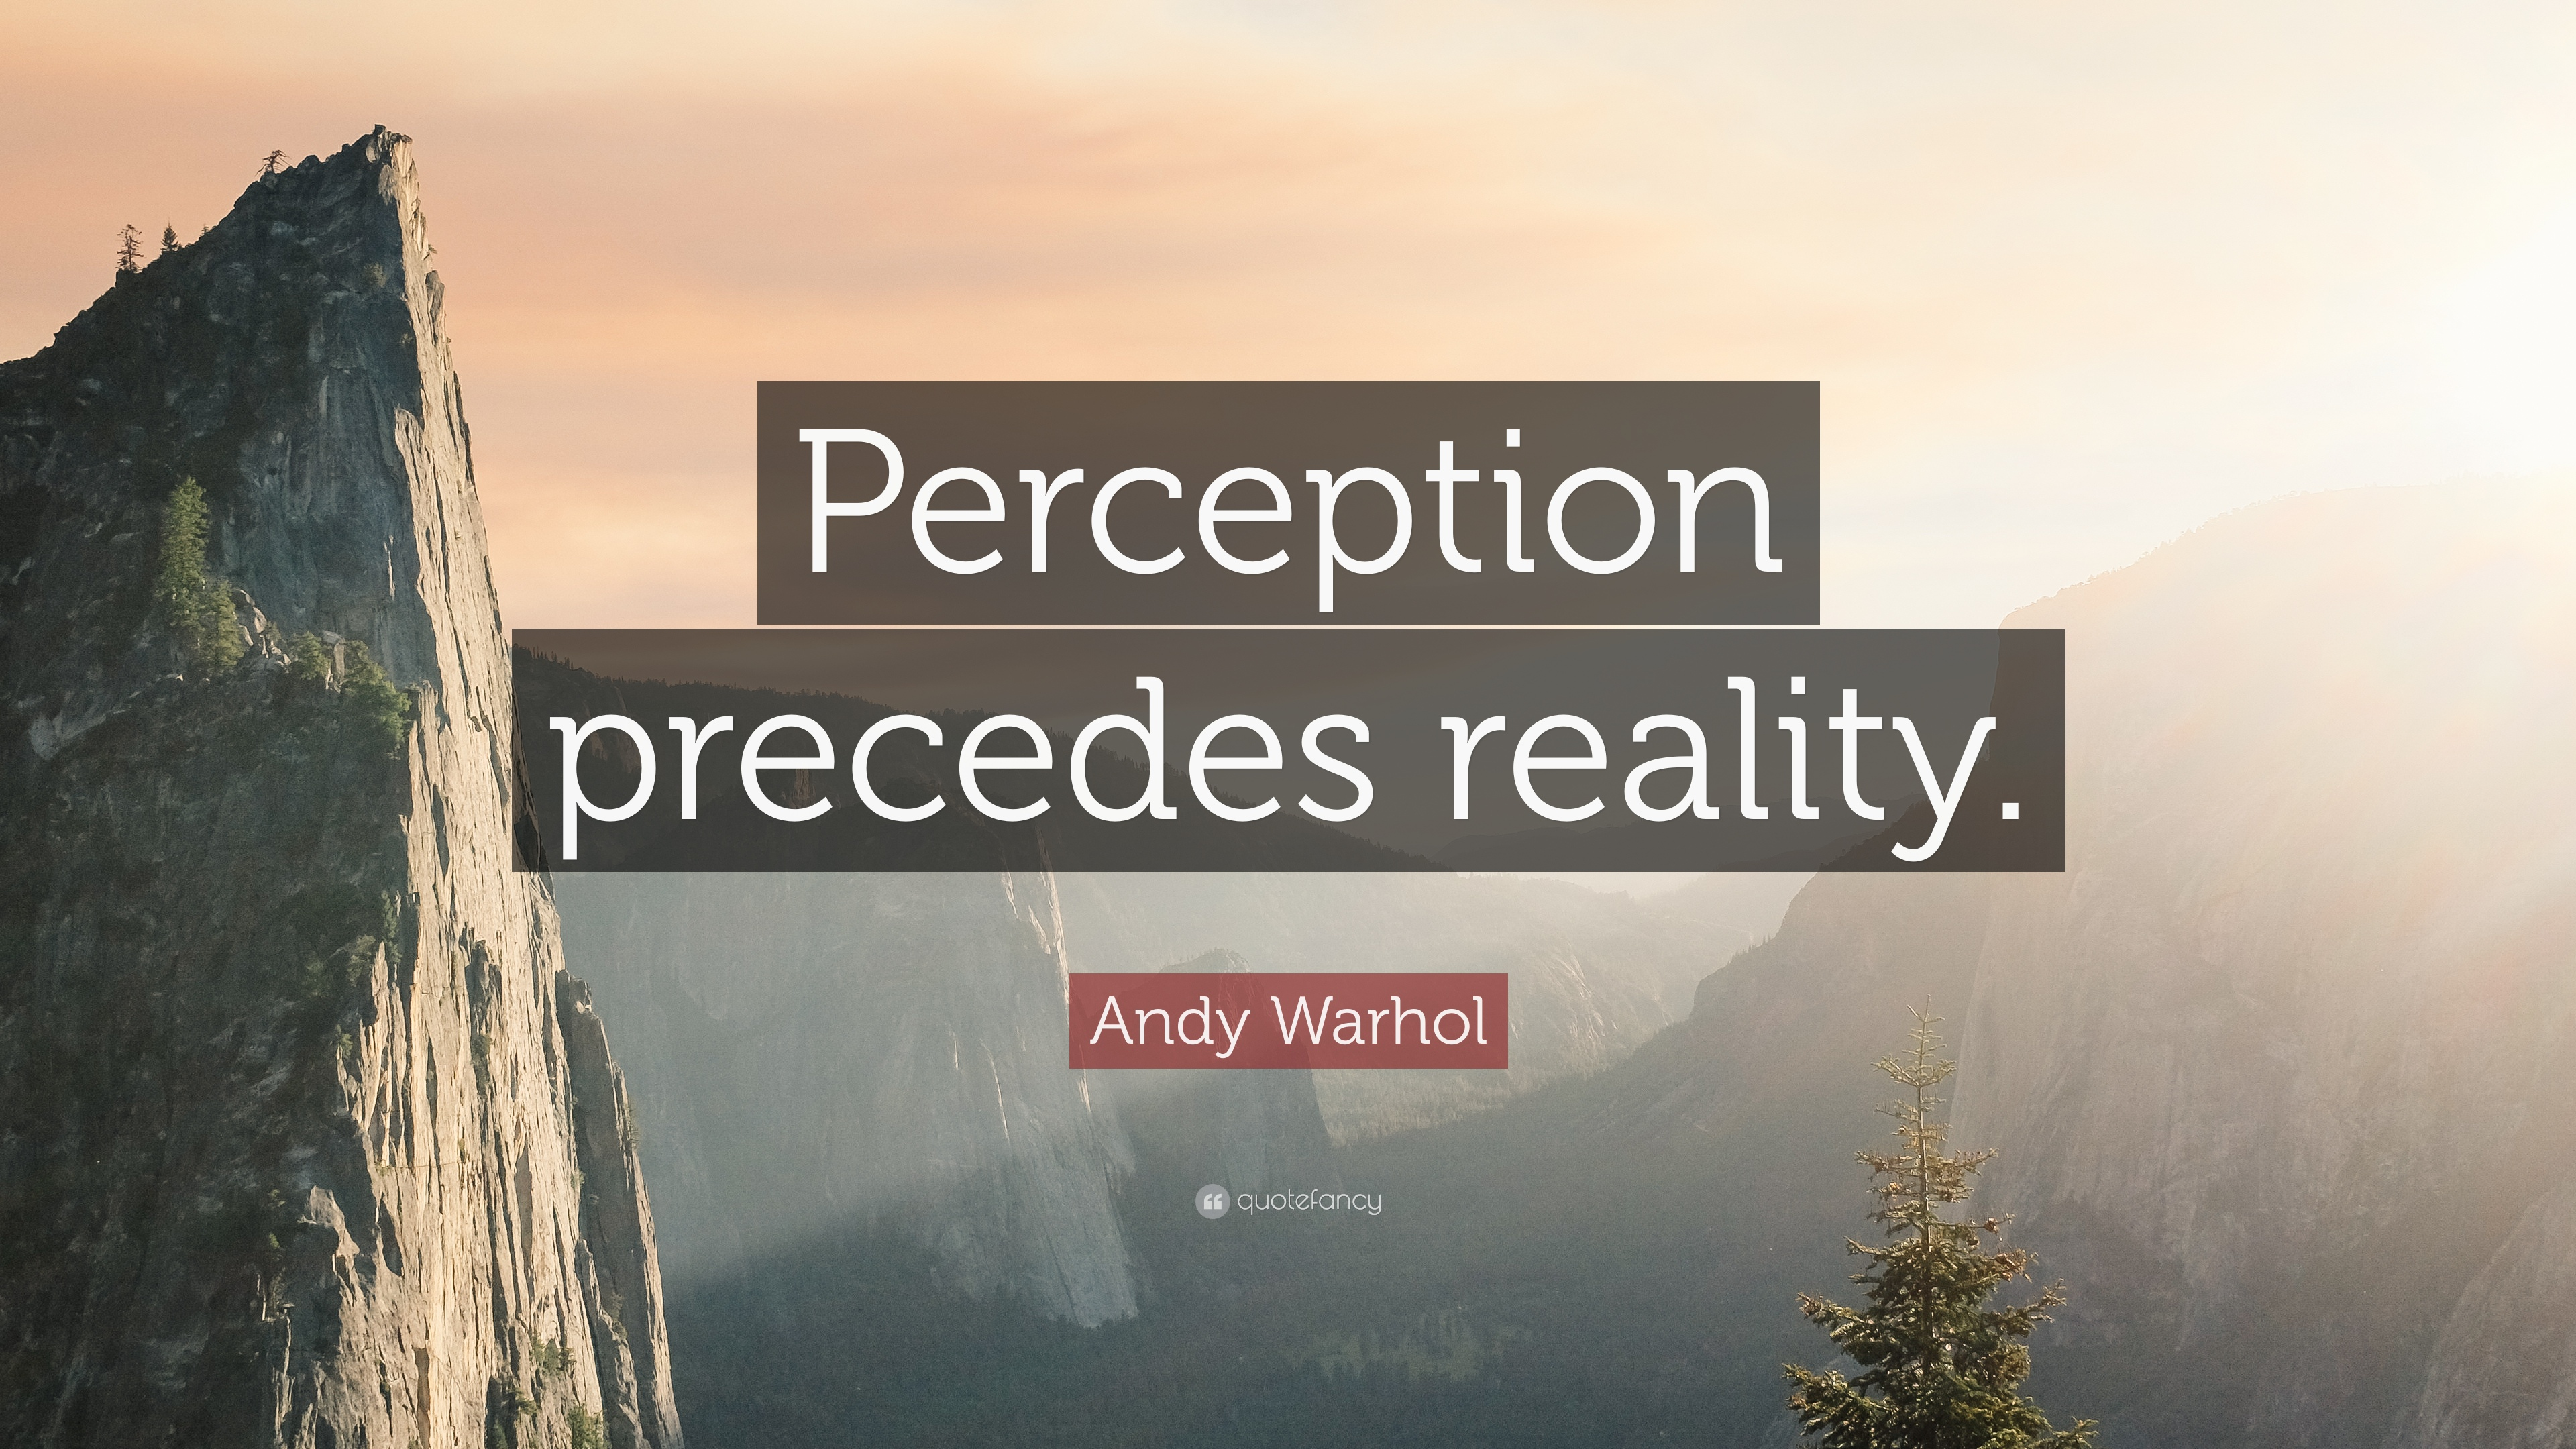 """andy warhol quote """"perception precedes reality """""""